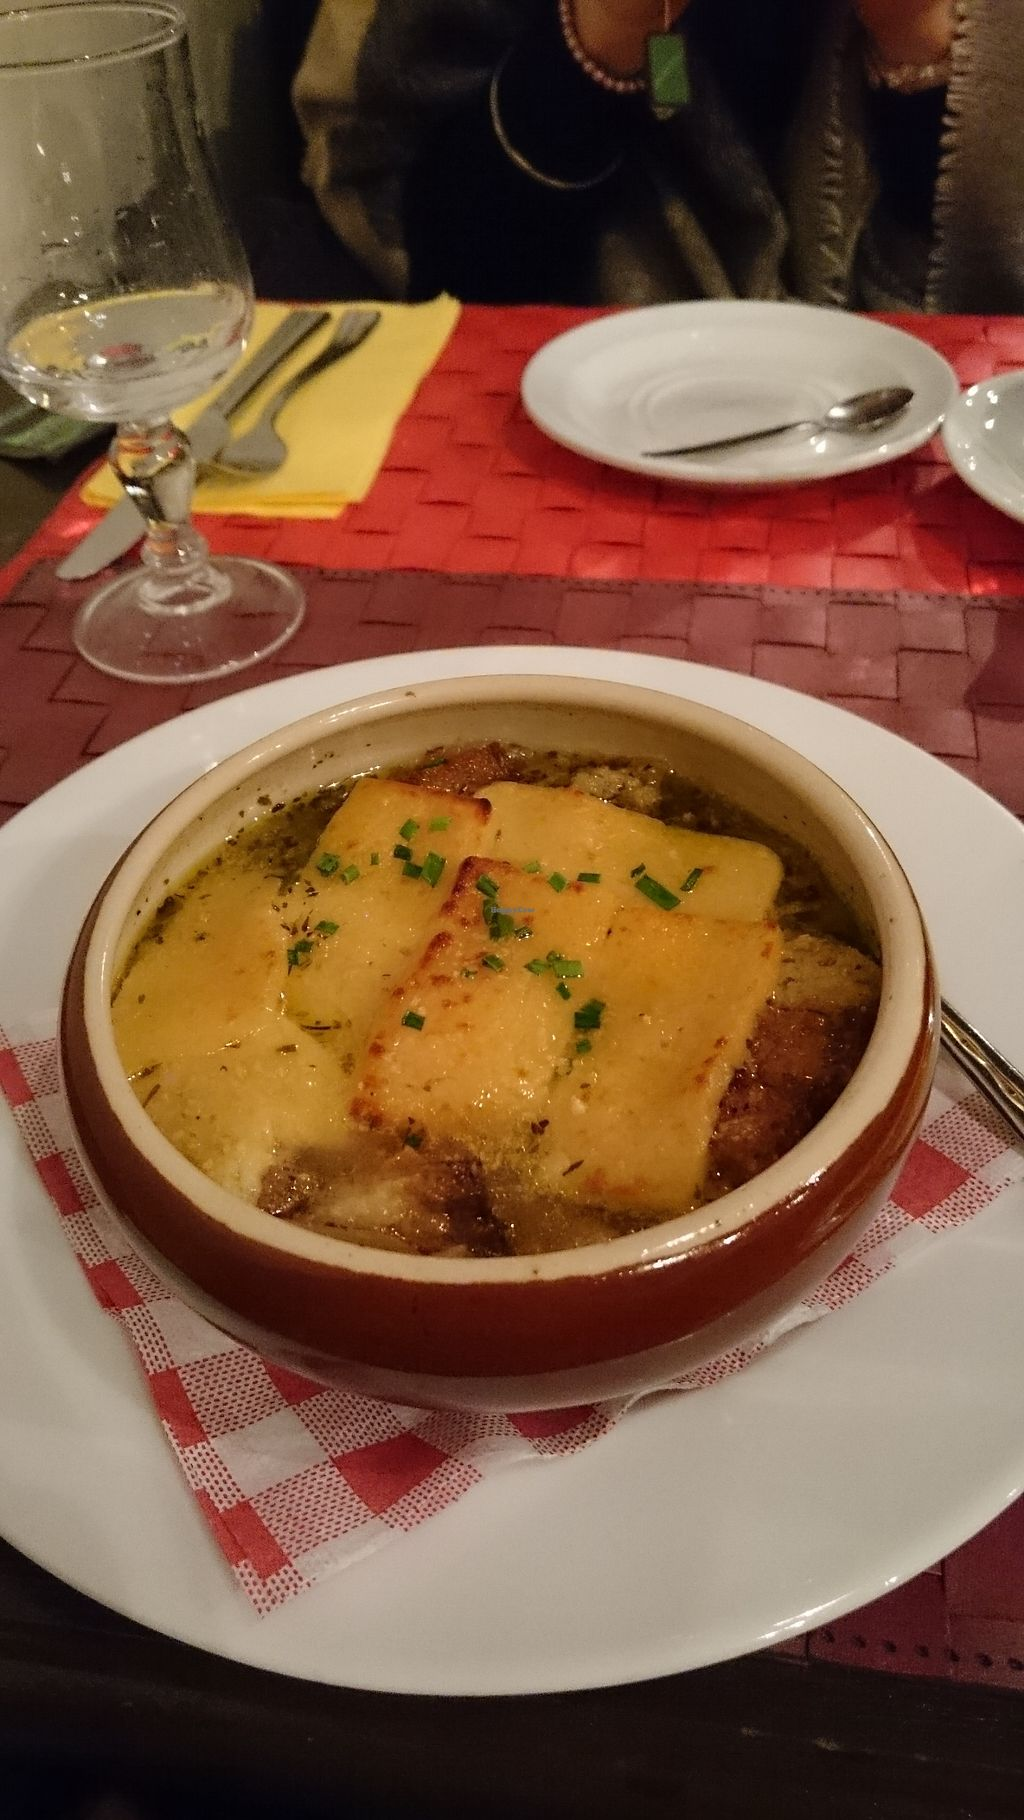 """Photo of Le Potager du Marais  by <a href=""""/members/profile/Layra"""">Layra</a> <br/>French onion soup <br/> March 1, 2018  - <a href='/contact/abuse/image/4106/365504'>Report</a>"""